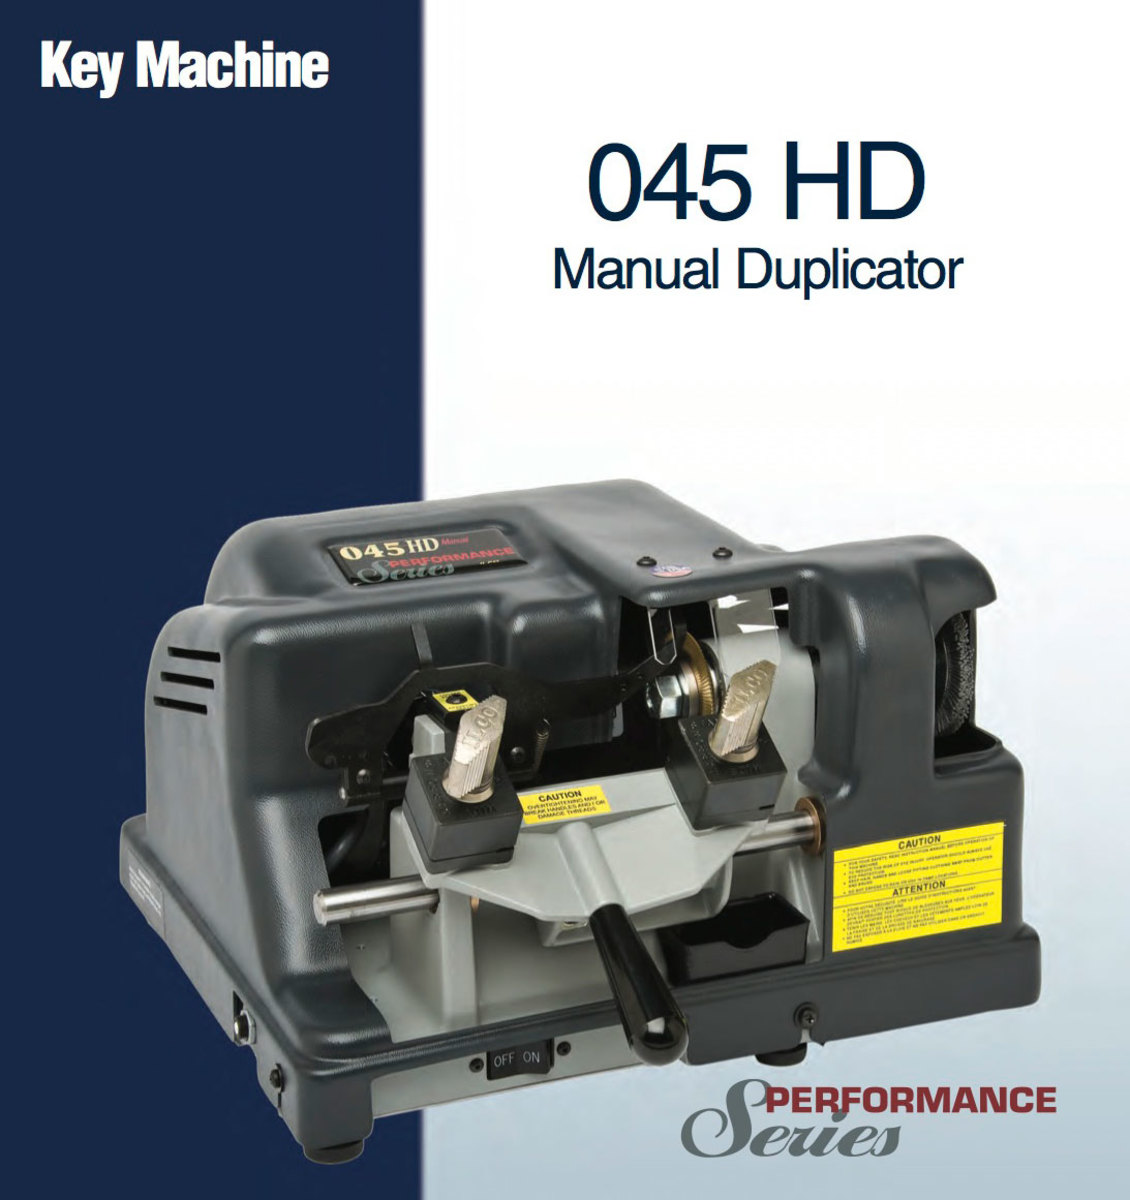 How Does a Standard Key Machine Work?